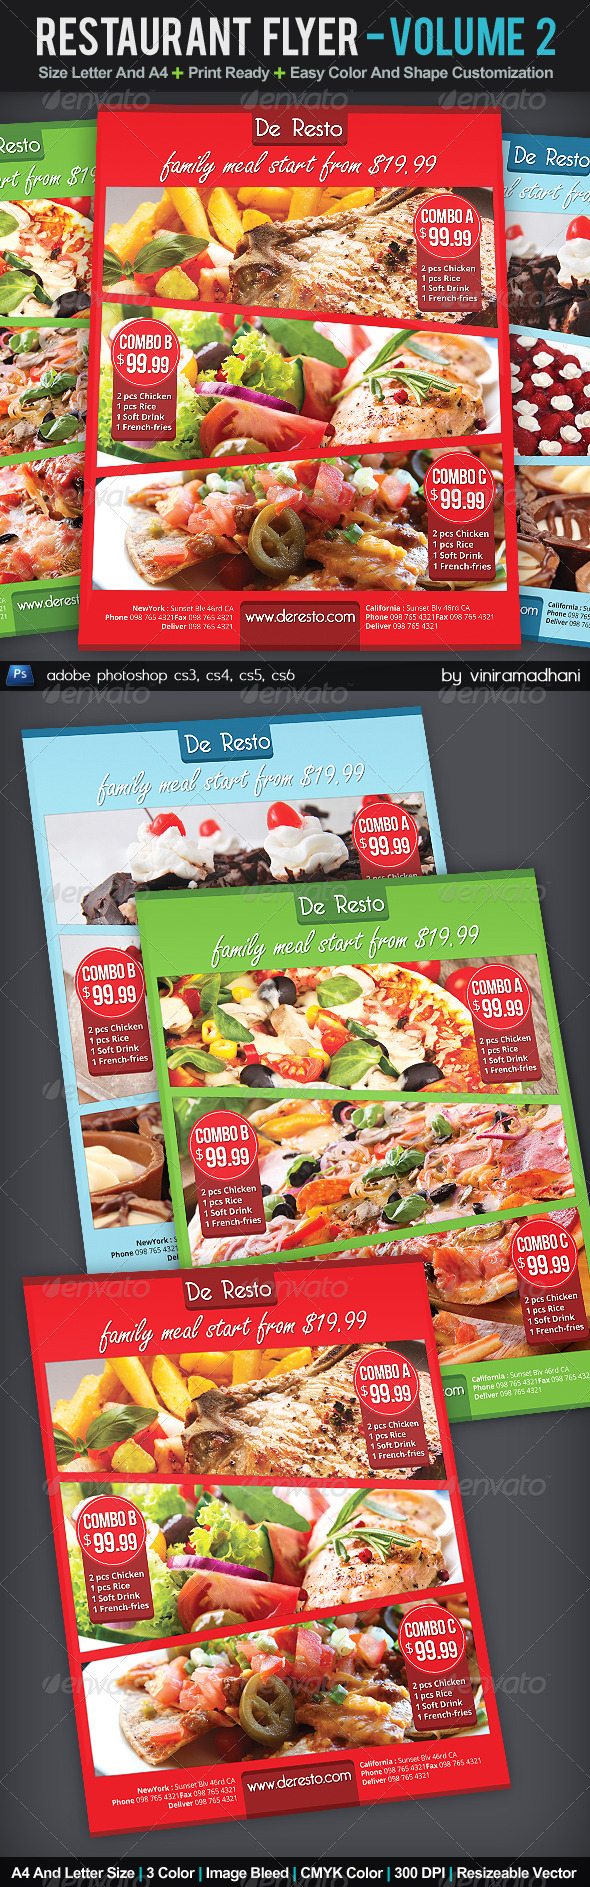 GraphicRiver Restaurant Flyer Volume 2 6047764